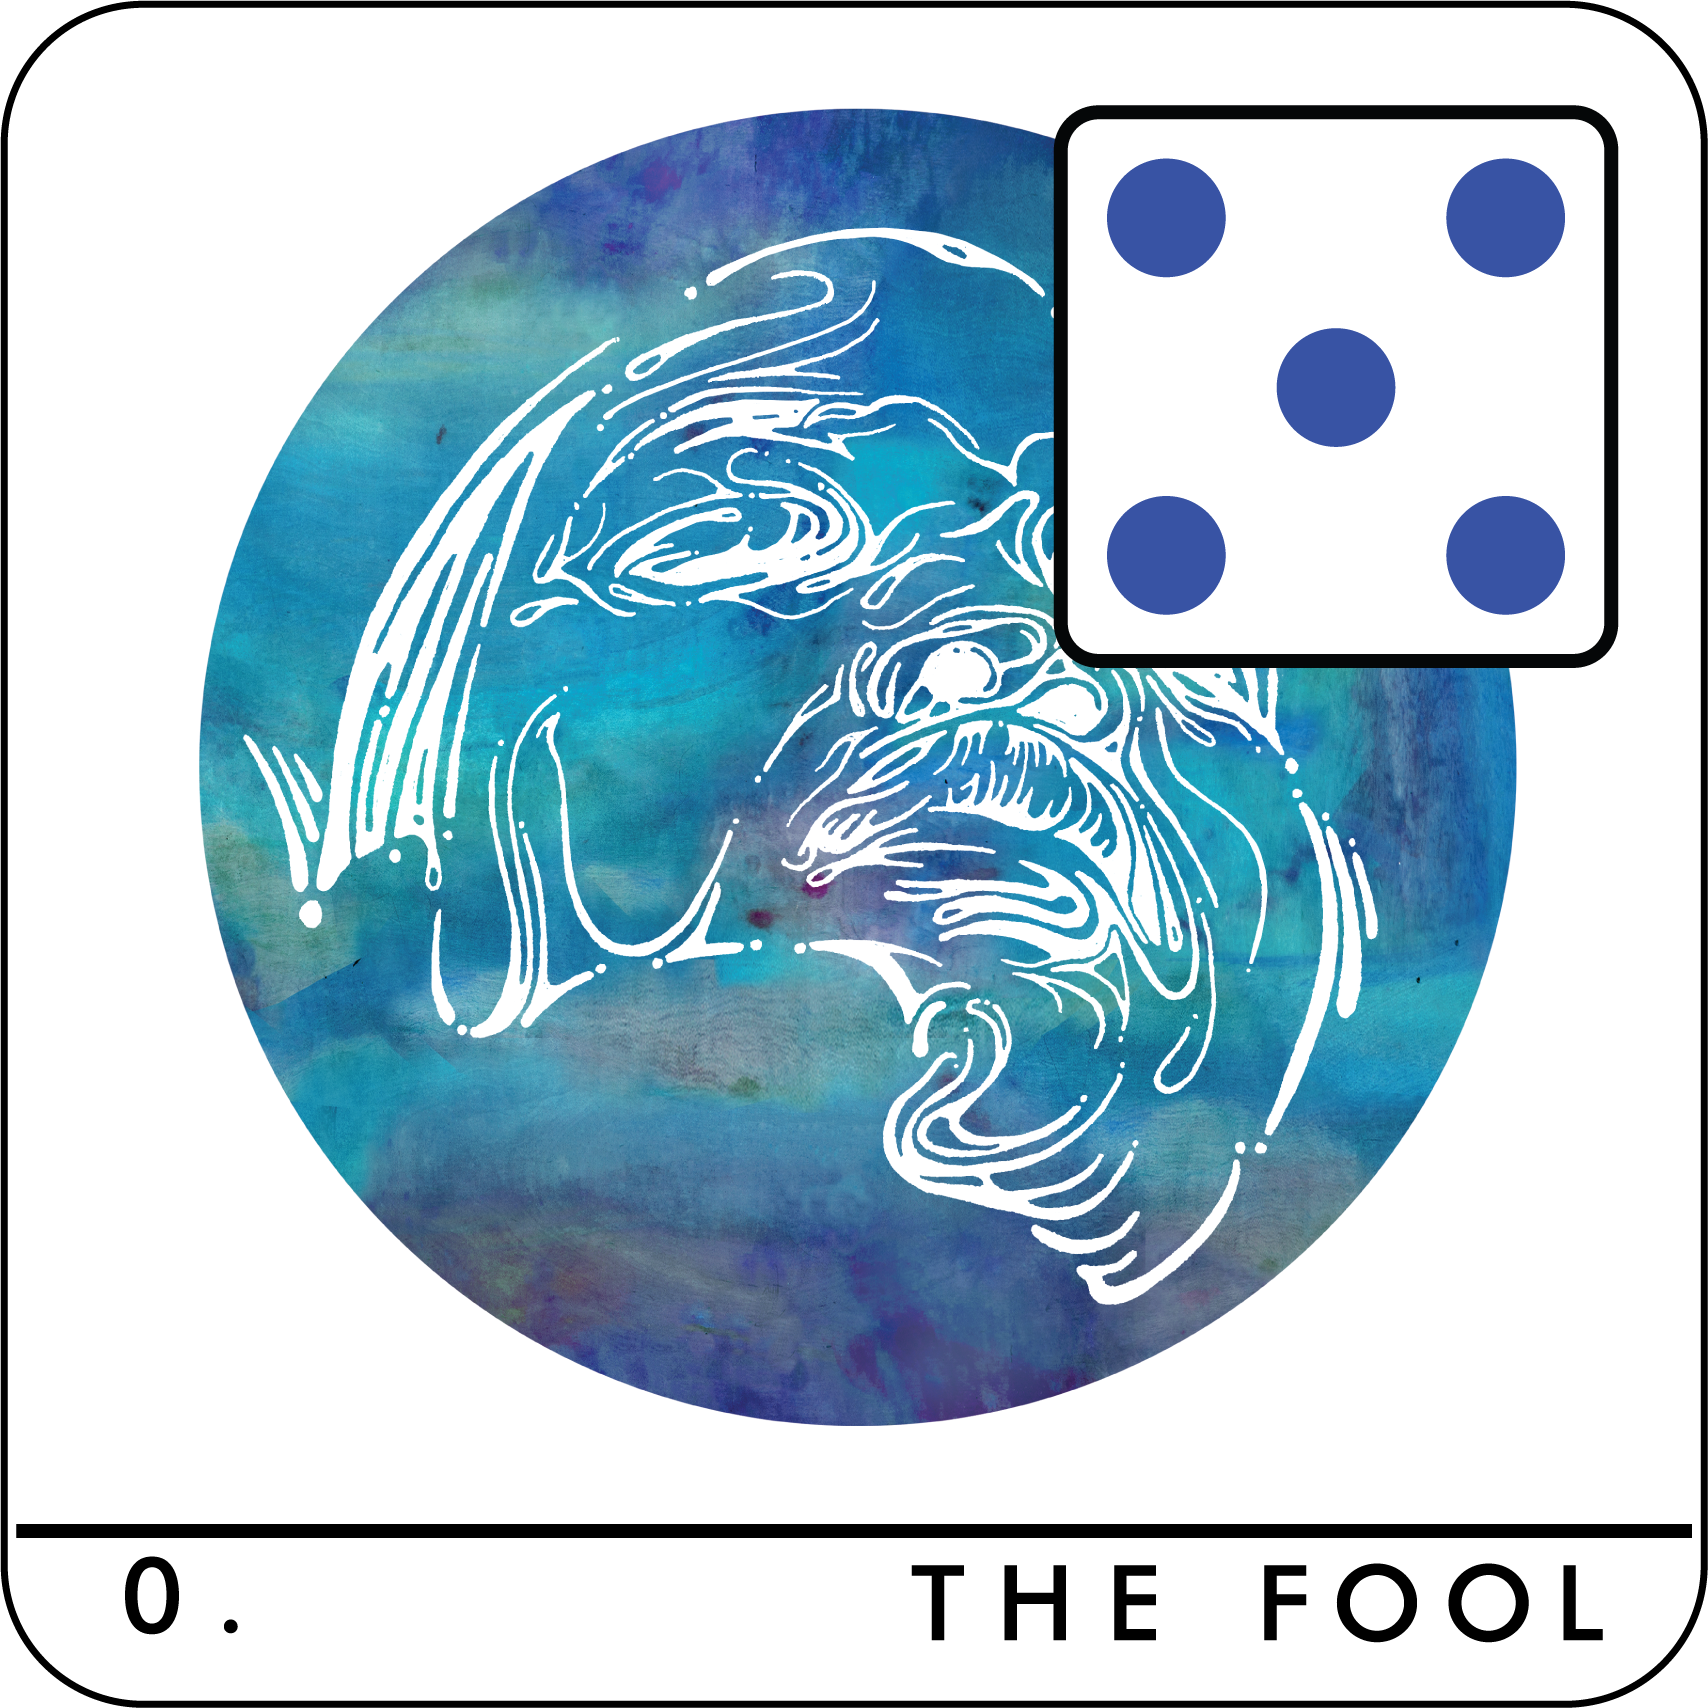 When you do, roll and place the Fool die on The Fool.